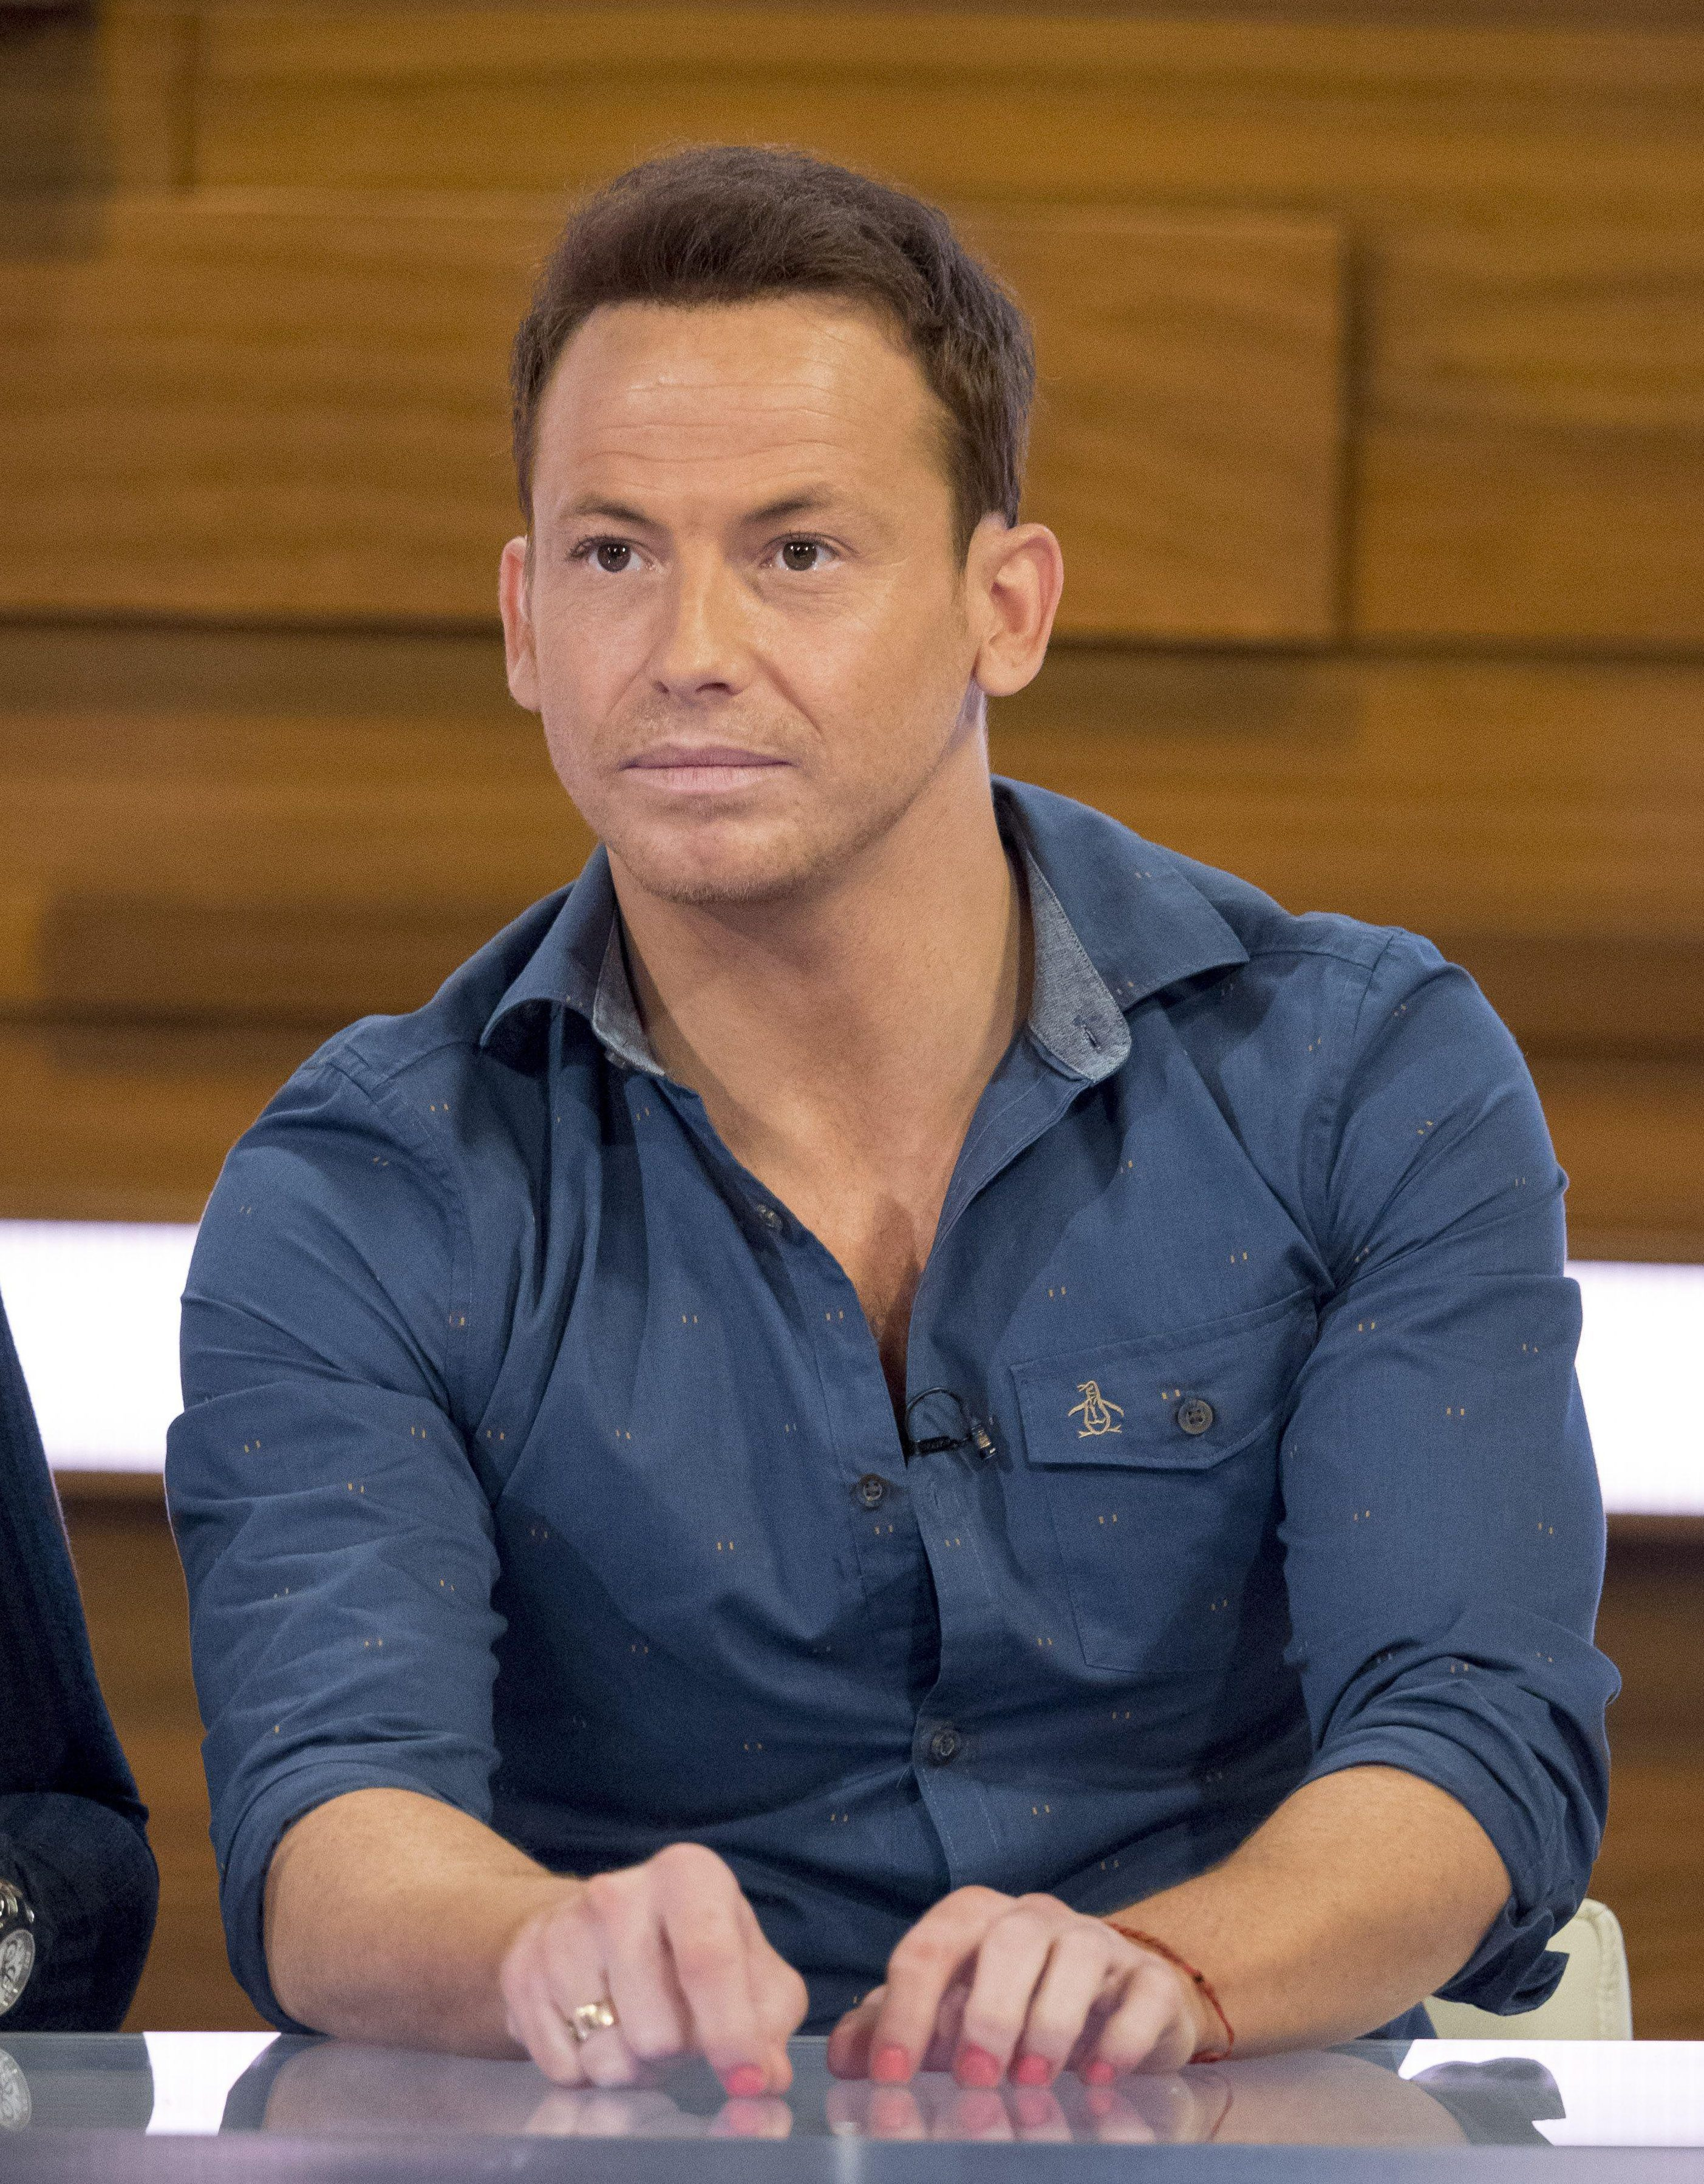 Who is Joe Swash? Stacey Solomon's boyfriend, Extra Camp presenter and I'm A Celebrity 2008 champion